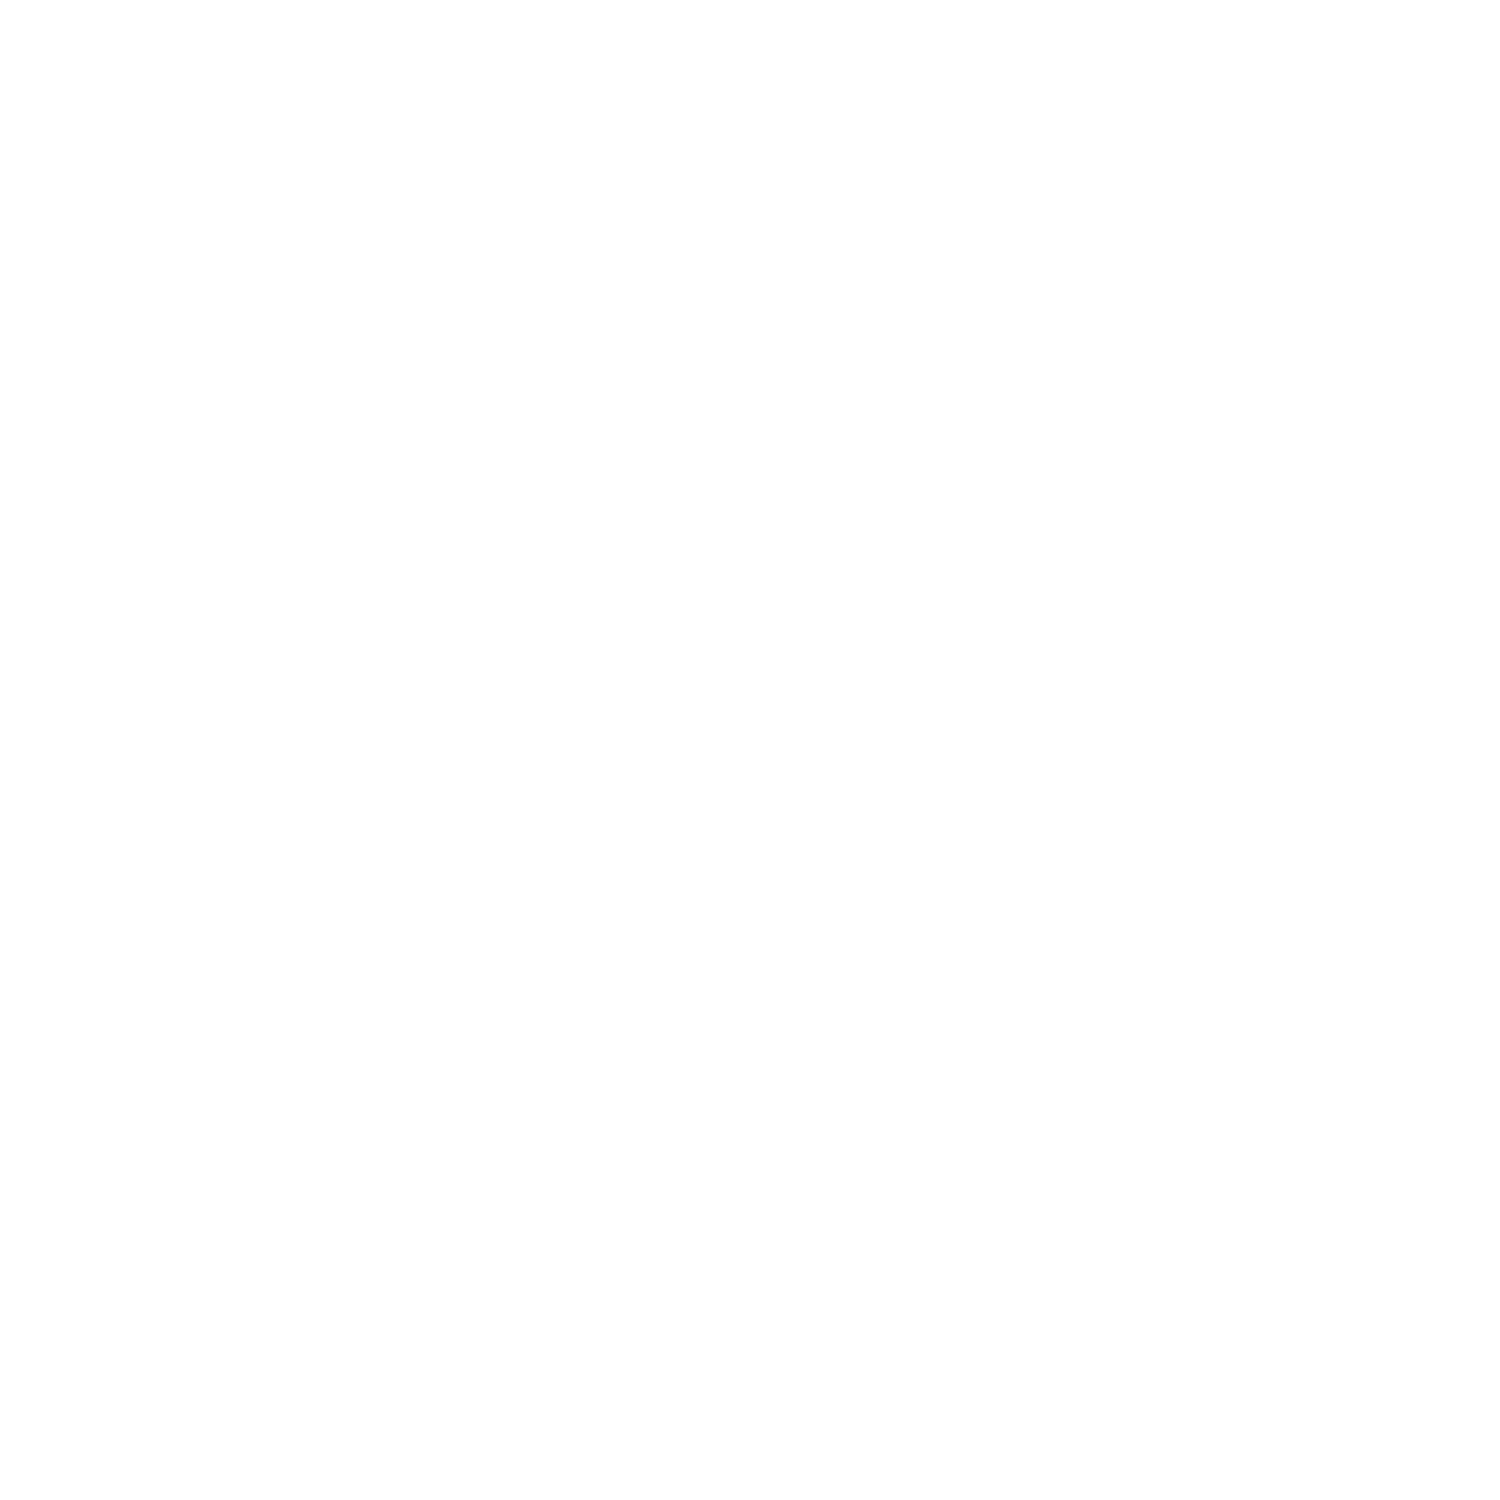 Good Men, Great Dads